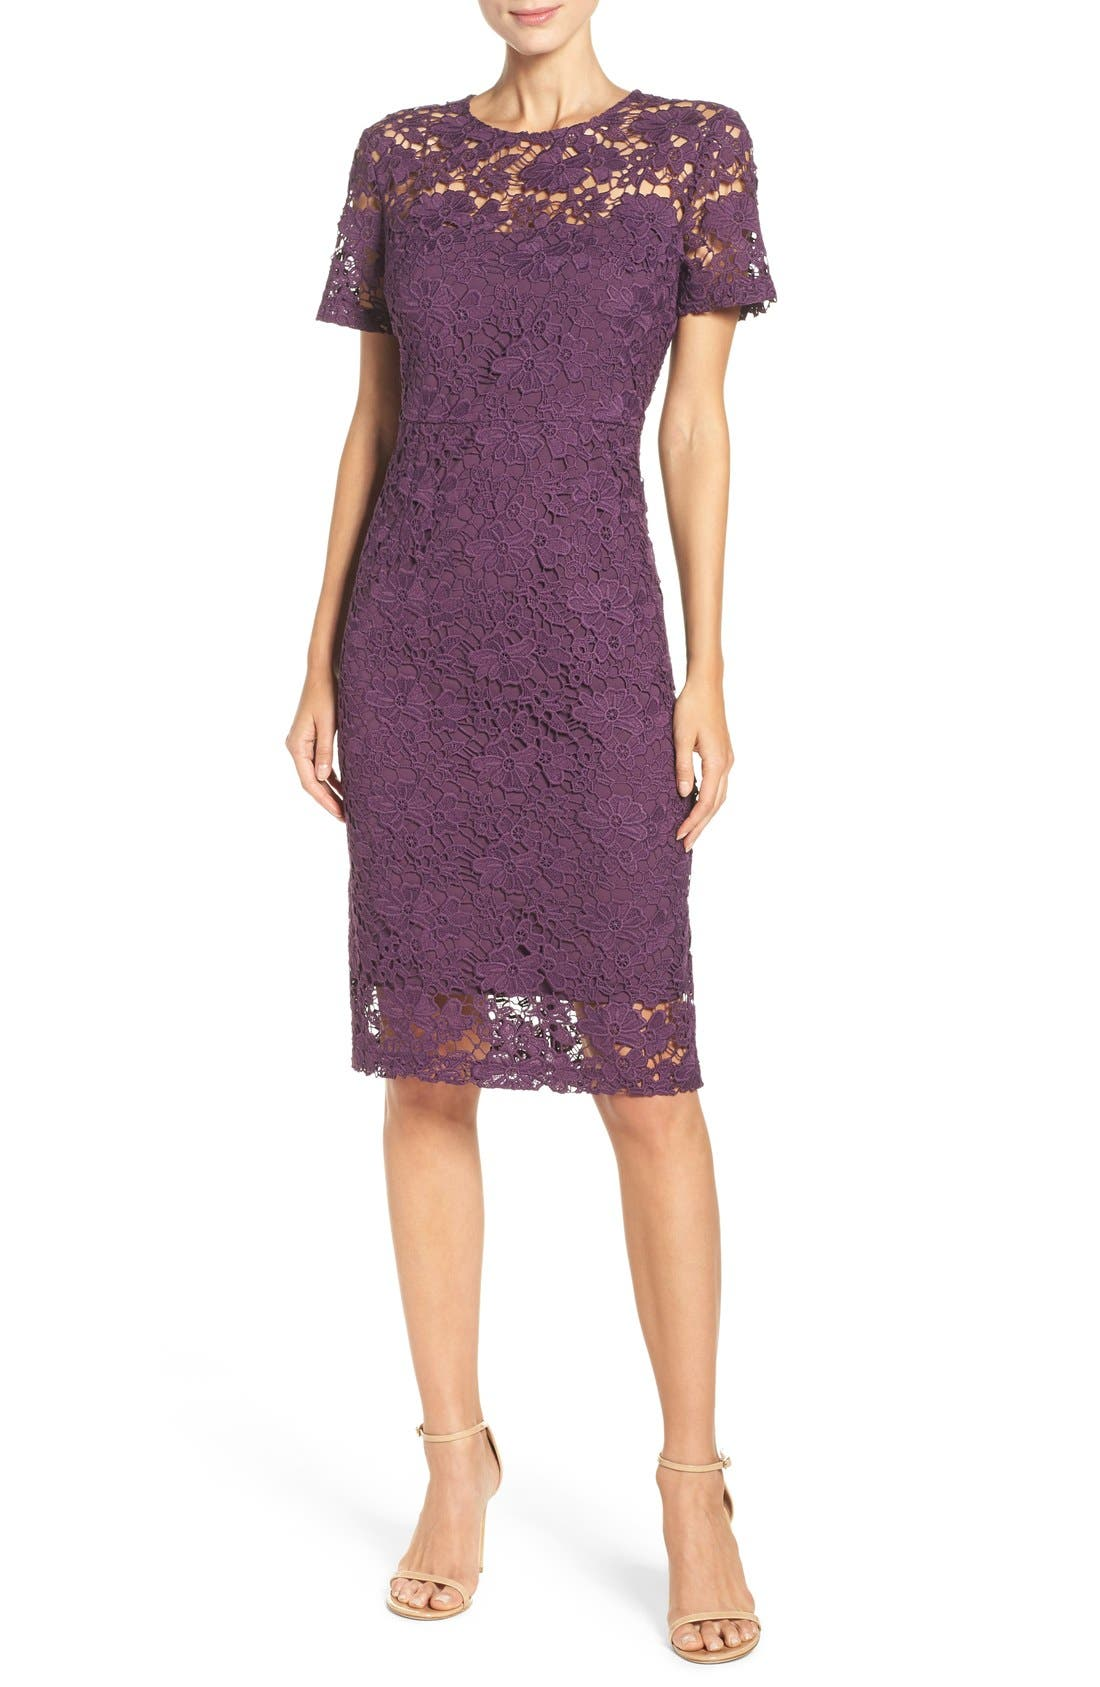 Alternate Image 1 Selected - Donna Morgan Lace Sheath Dress (Regular & Petite)